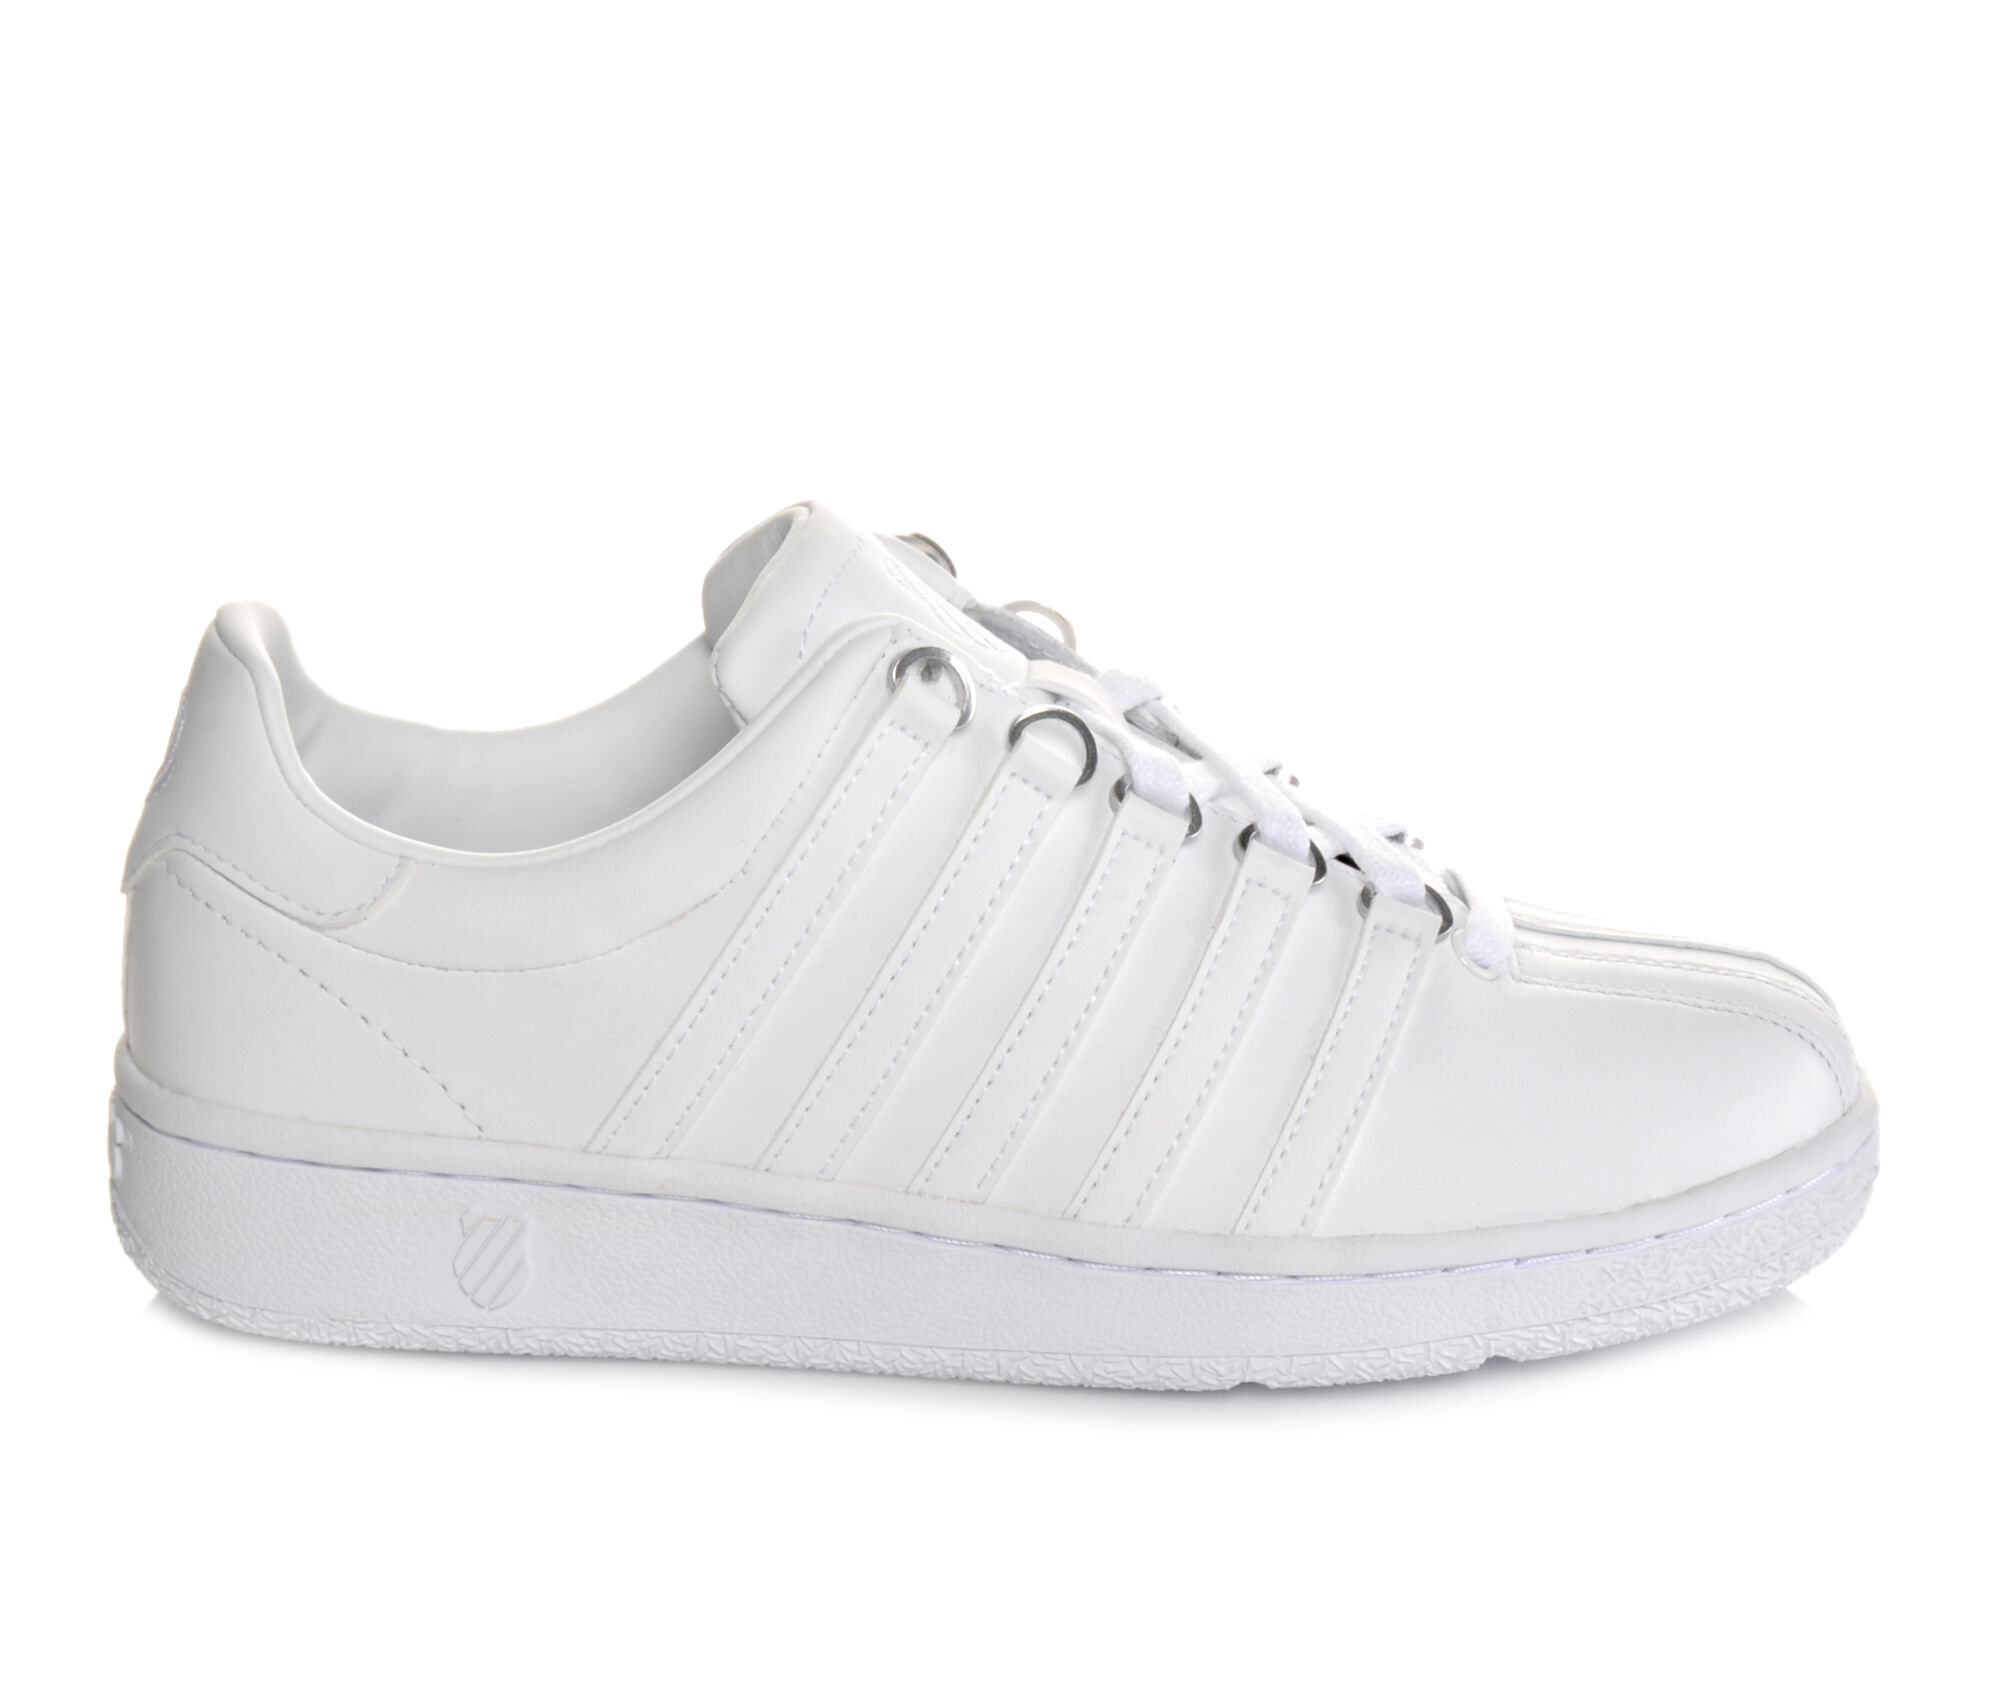 k swiss shoes orlando